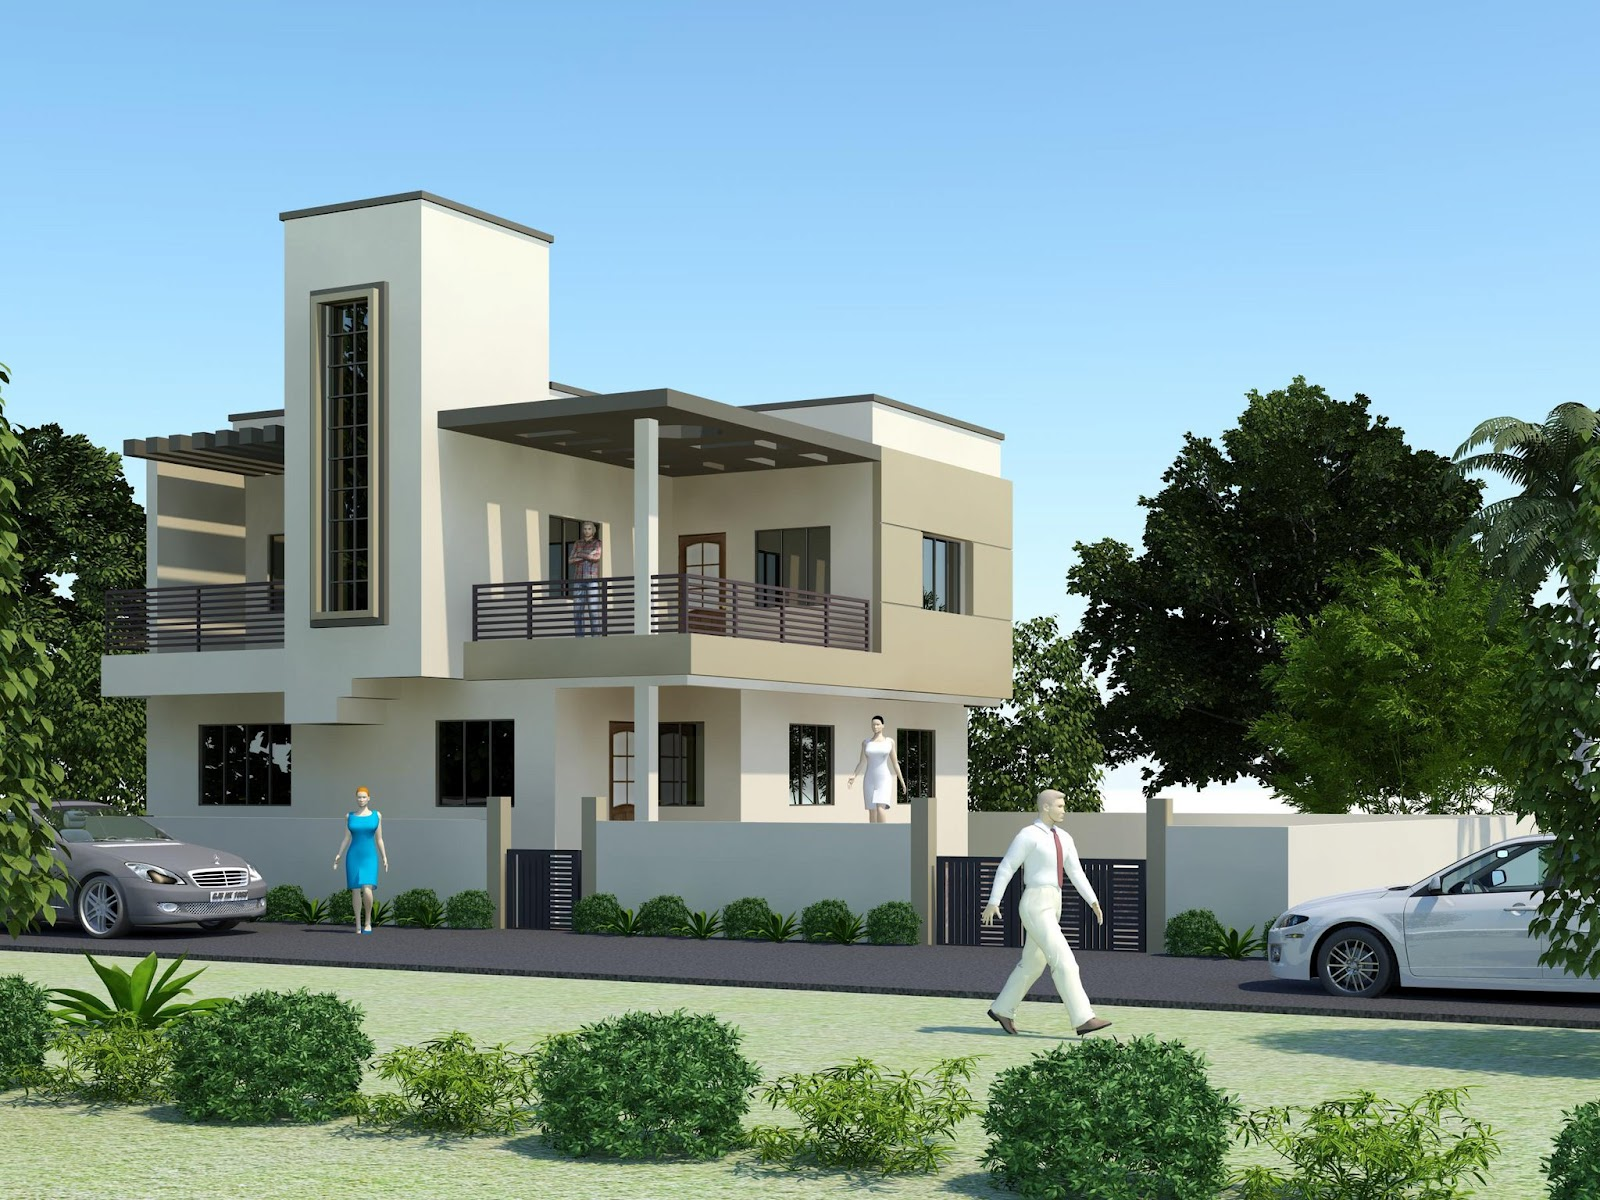 New home designs latest modern homes exterior designs for Indian home exterior designs